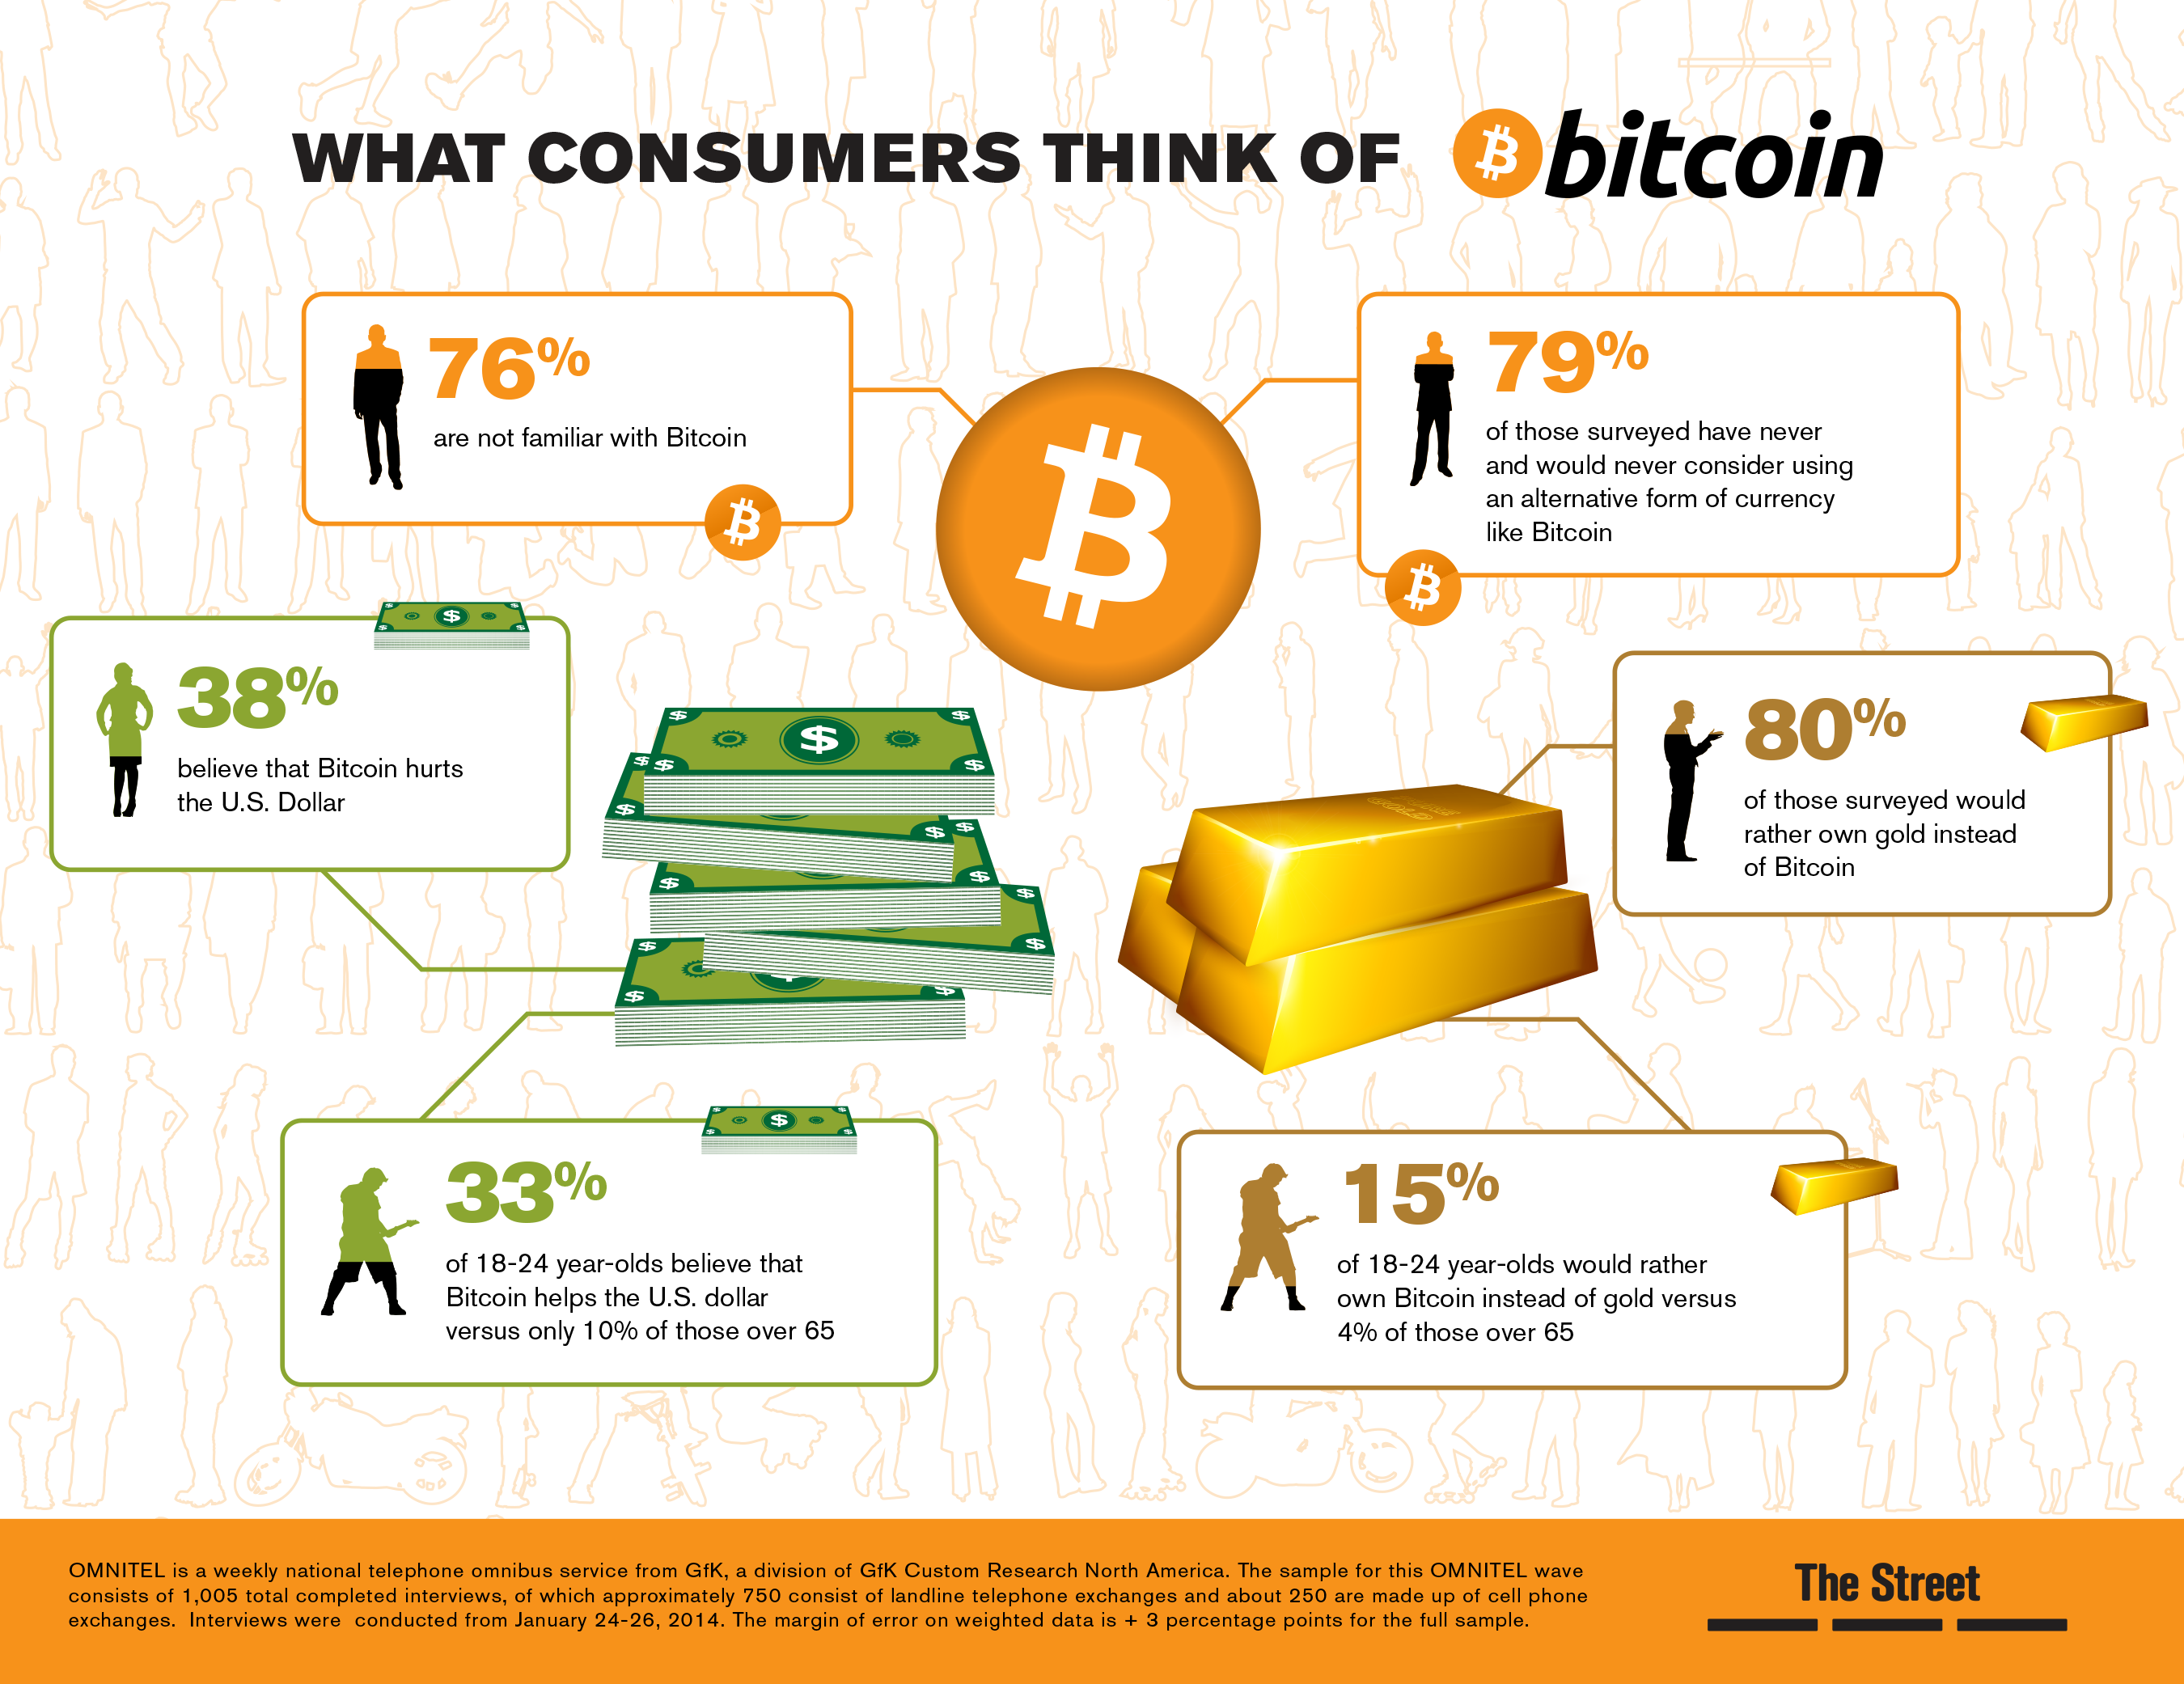 Infographic by TheStreet